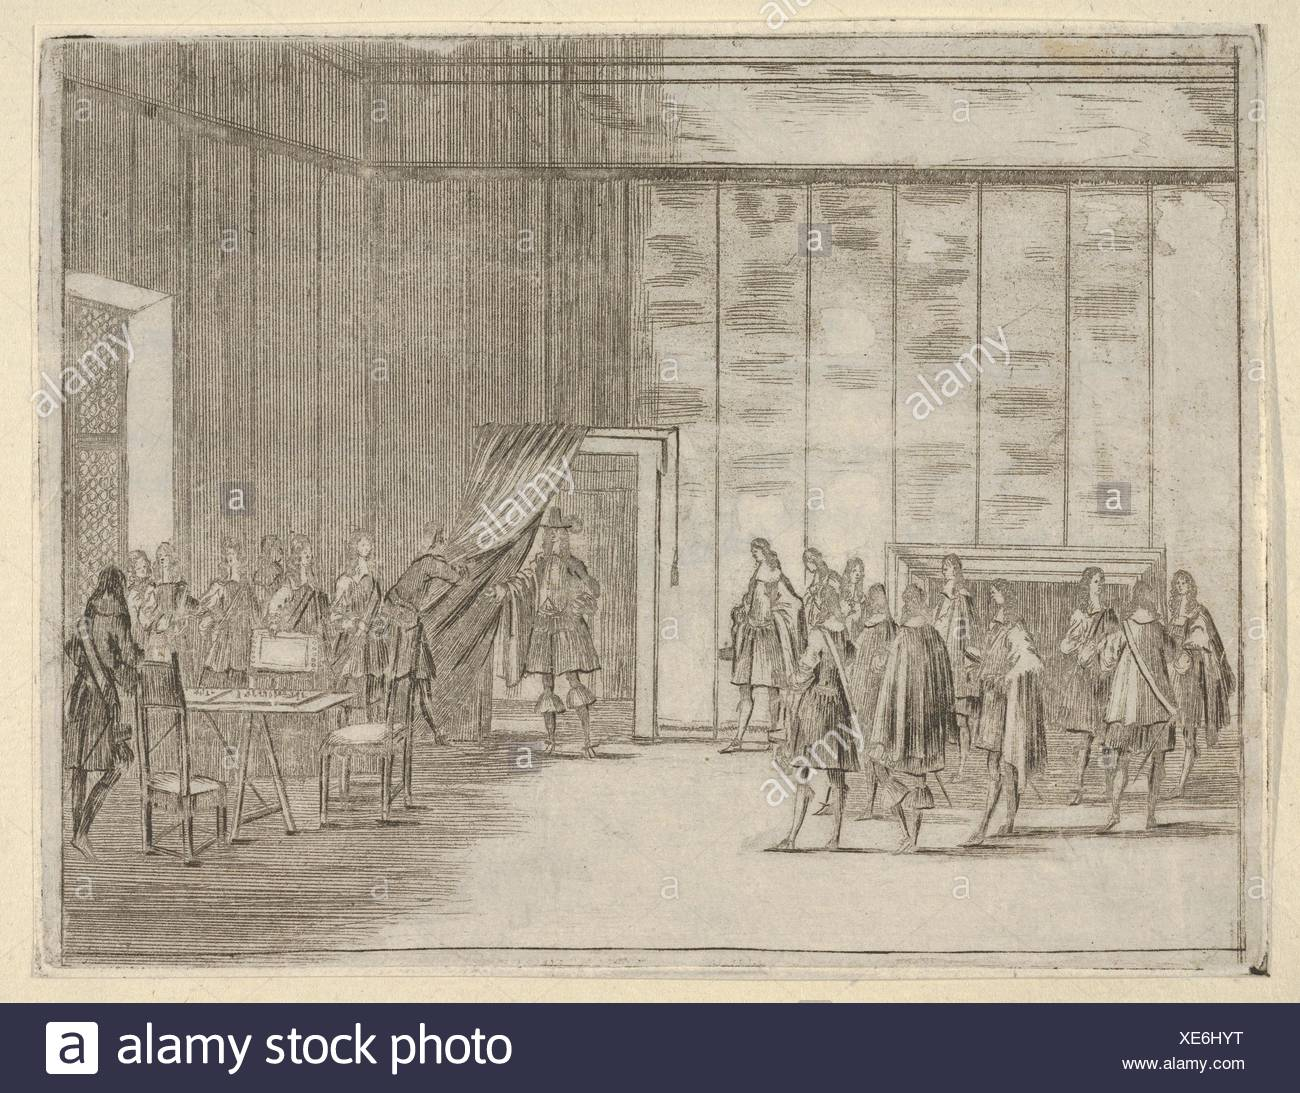 Francesco I d'Este, with his Gentle Manner, is Loved by All of the Noblemen in his Court, from L'Idea di un Principe ed Eroe Cristiano in Francesco I - Stock Image